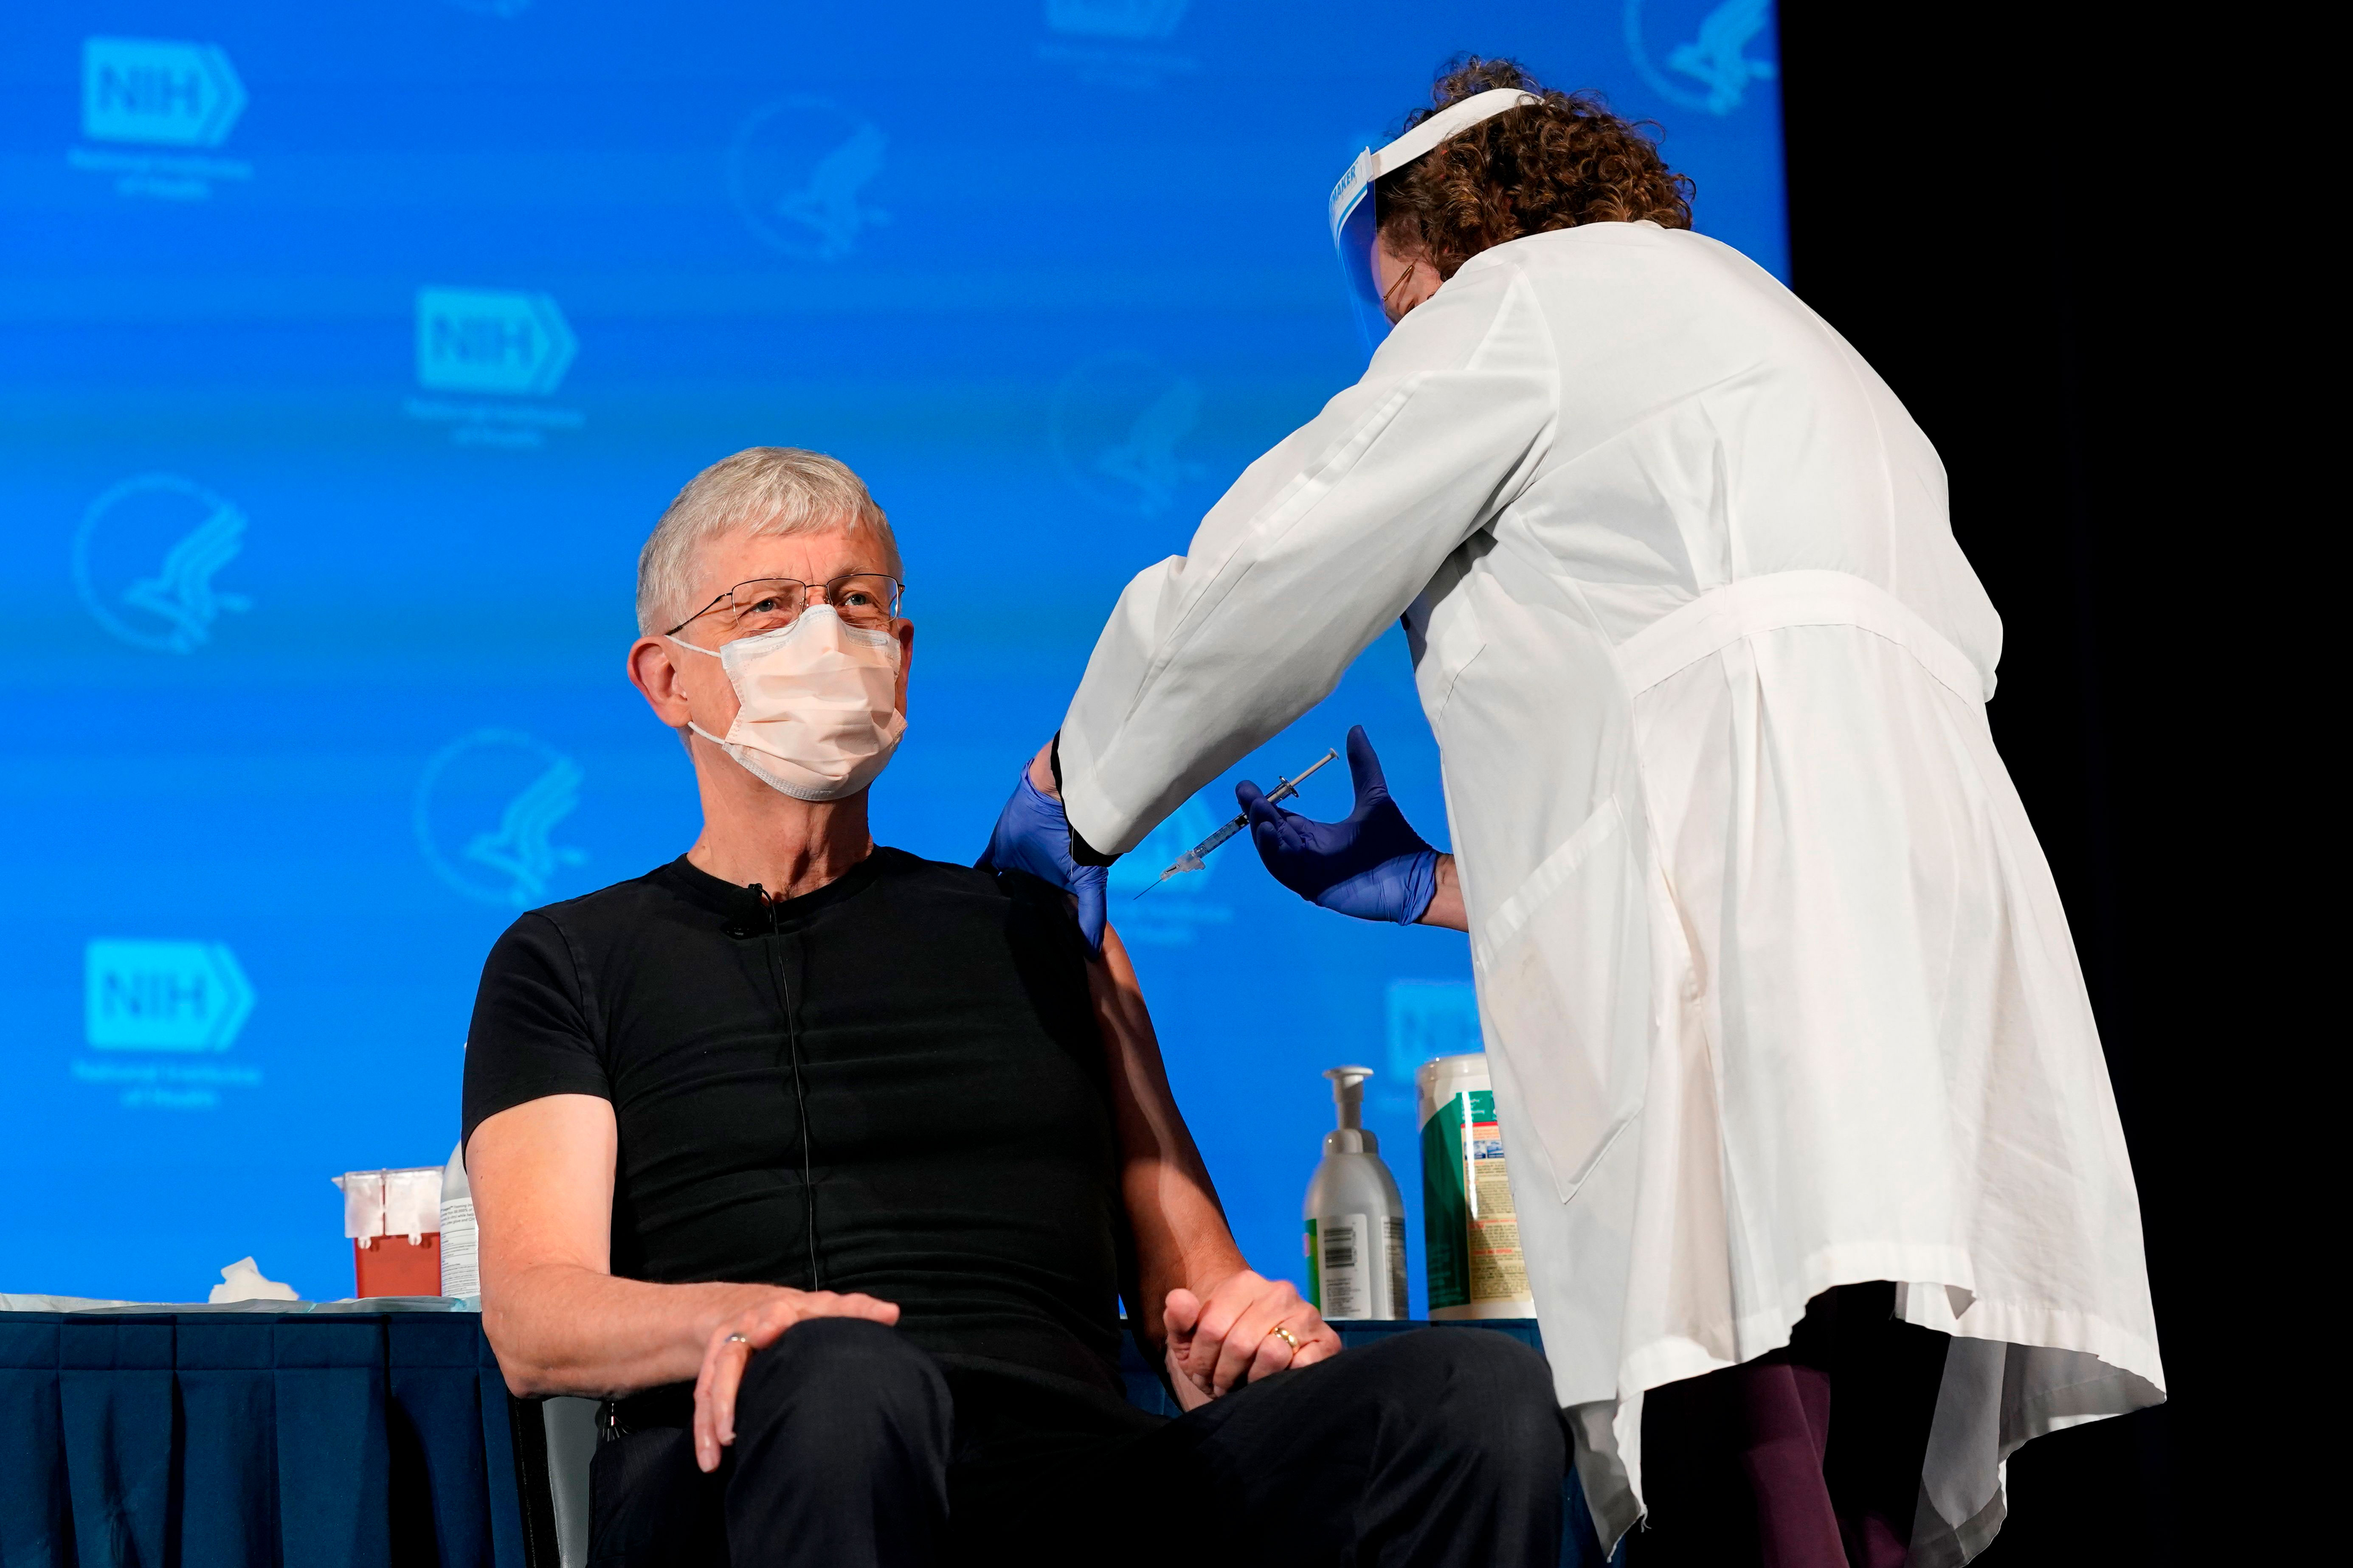 Dr. Francis Collins, director of the National Institutes of Health, receives his Covid-19 vaccine in Bethesda, Maryland, on December 22.